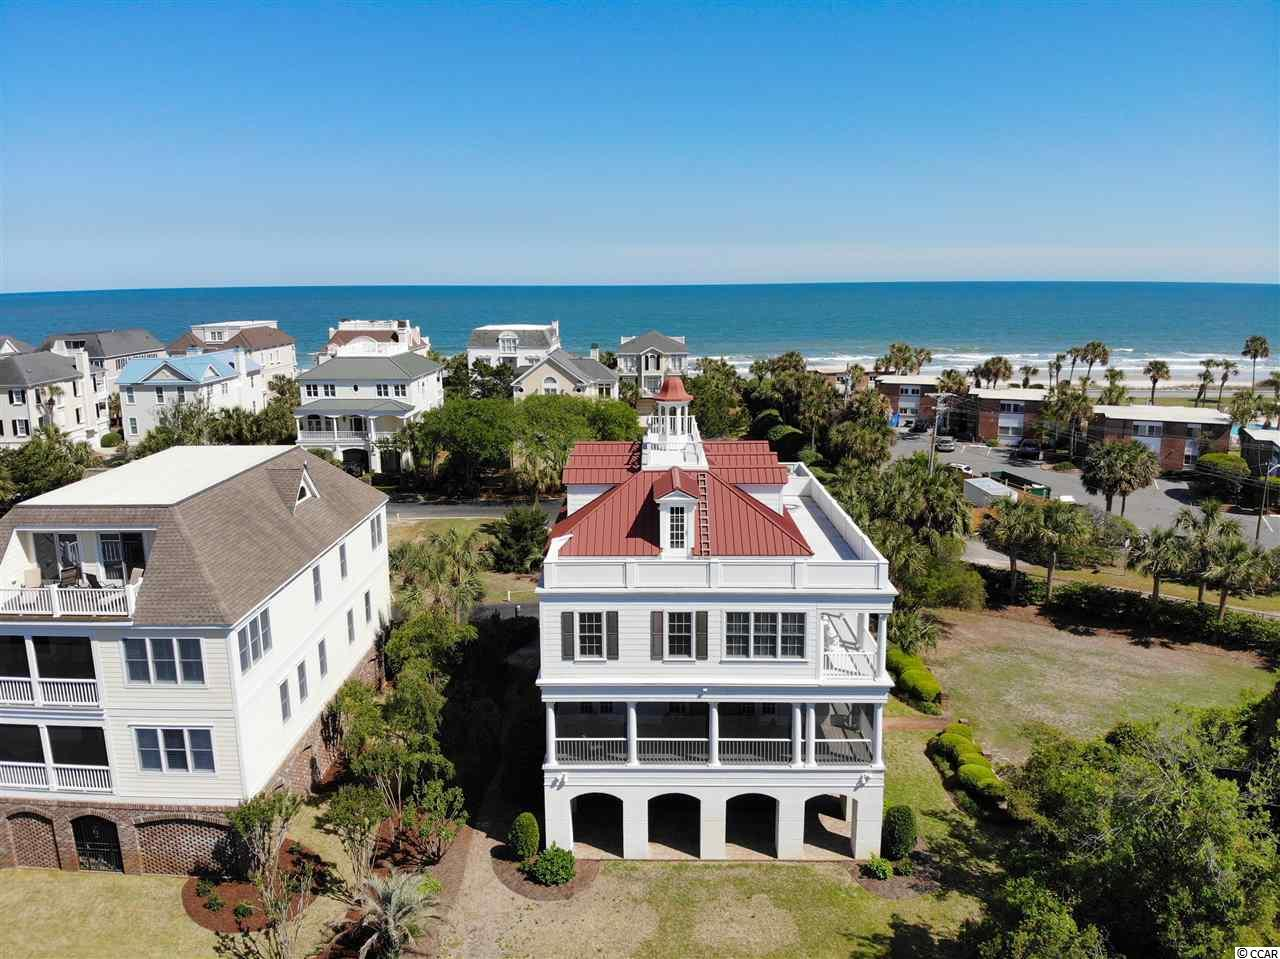 """Beautiful marshfront home in Charlestowne Grant in prestigious Litchfield by the Sea.  Just steps to the beach! Enjoy ocean views from the front and marsh views from the back!  The best of both worlds!  This well-built home has gracious sized rooms.  Enjoy sitting in the living room with expansive views of the marsh or walk on the large outdoor screen porch to enjoy the evening sunset.  Upstairs is a large deck and rooftop balcony to feel the ocean breeze, enjoy views of Litchfield by the Sea and South Litchfield and look out over the marsh.  The meticulously kept house has hardwood floors, crown molding, elevator, granite countertops, many built-ins, central vaccuum, water filtration system, metal roof and plenty of living space.  There are two fireplaces, one in the living room and another in the """"keeping"""" room off of the kitchen.  The master suite has an adjoining sitting room with porch access.  This house has so much to offer.  Don't miss this chance to enjoy beach living.  Litchfield by the Sea is a gated community with private beach access, lighted tennis courts, beach clubhouse, pool, fishing and crabbing piers and more.  Just a 70 mile drive for a day trip to Charleston, SC or a 35 mile drive to the attractions of Myrtle Beach."""